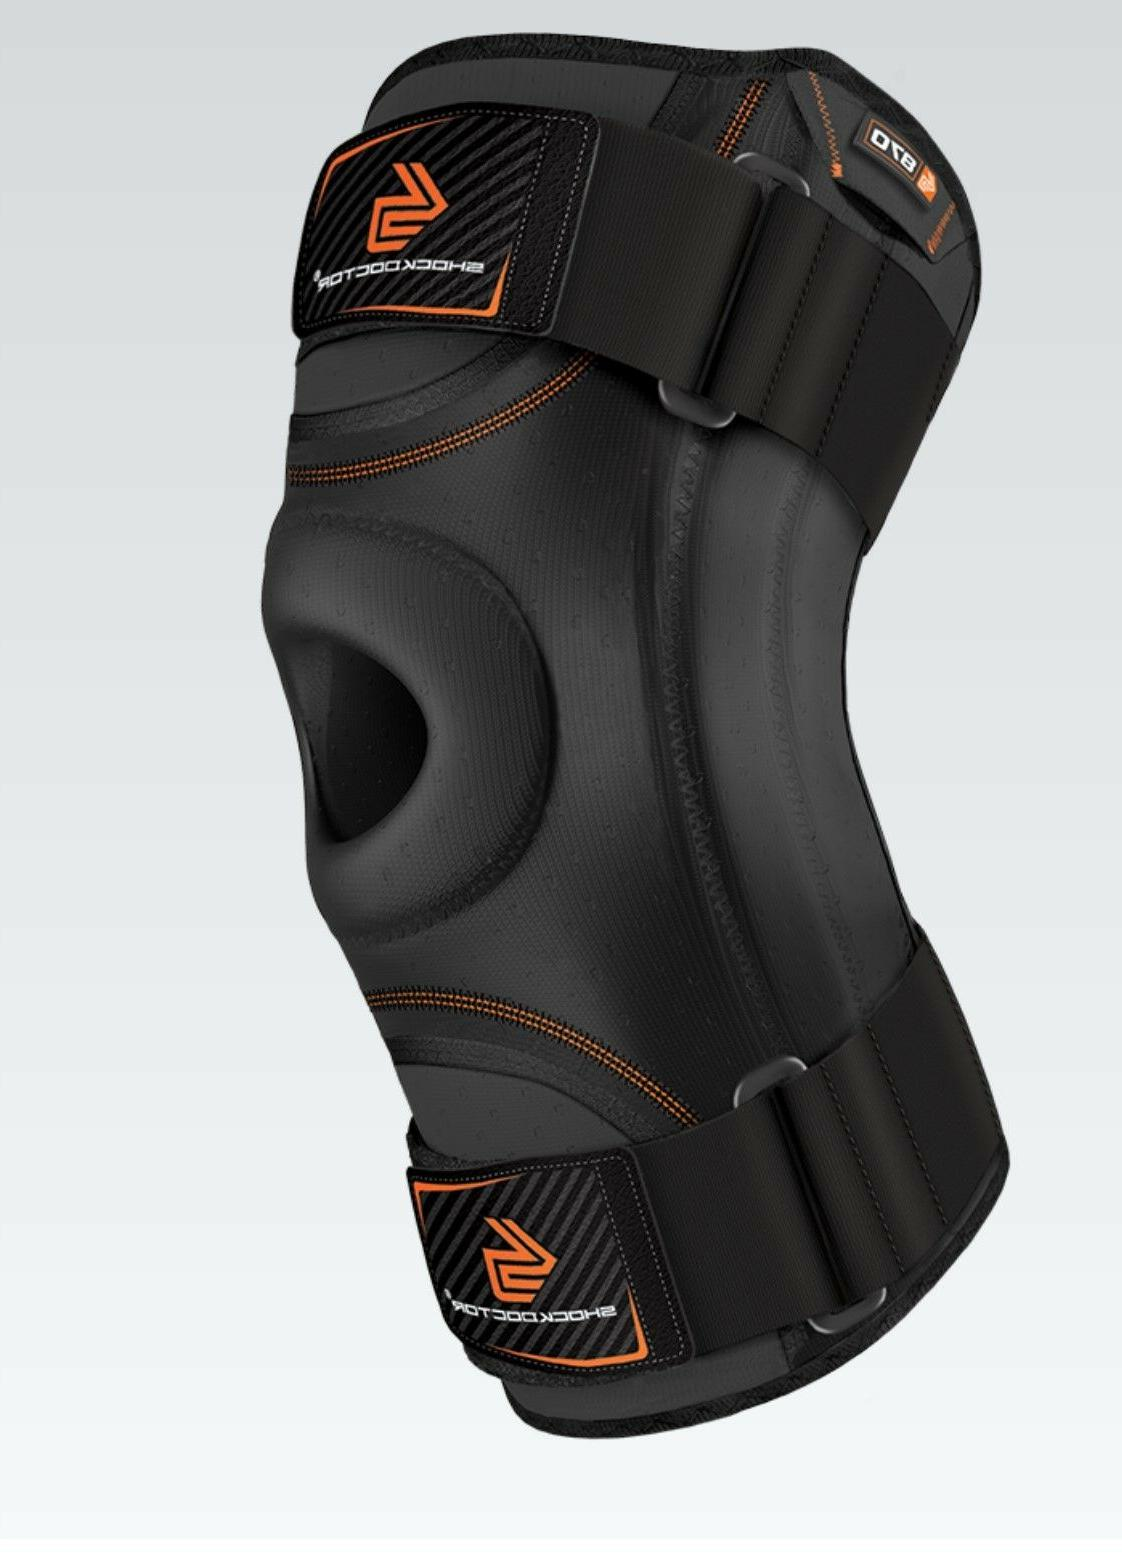 bf883bb347 Shock Doctor Knee Stabilizer with Flexible Support Stays